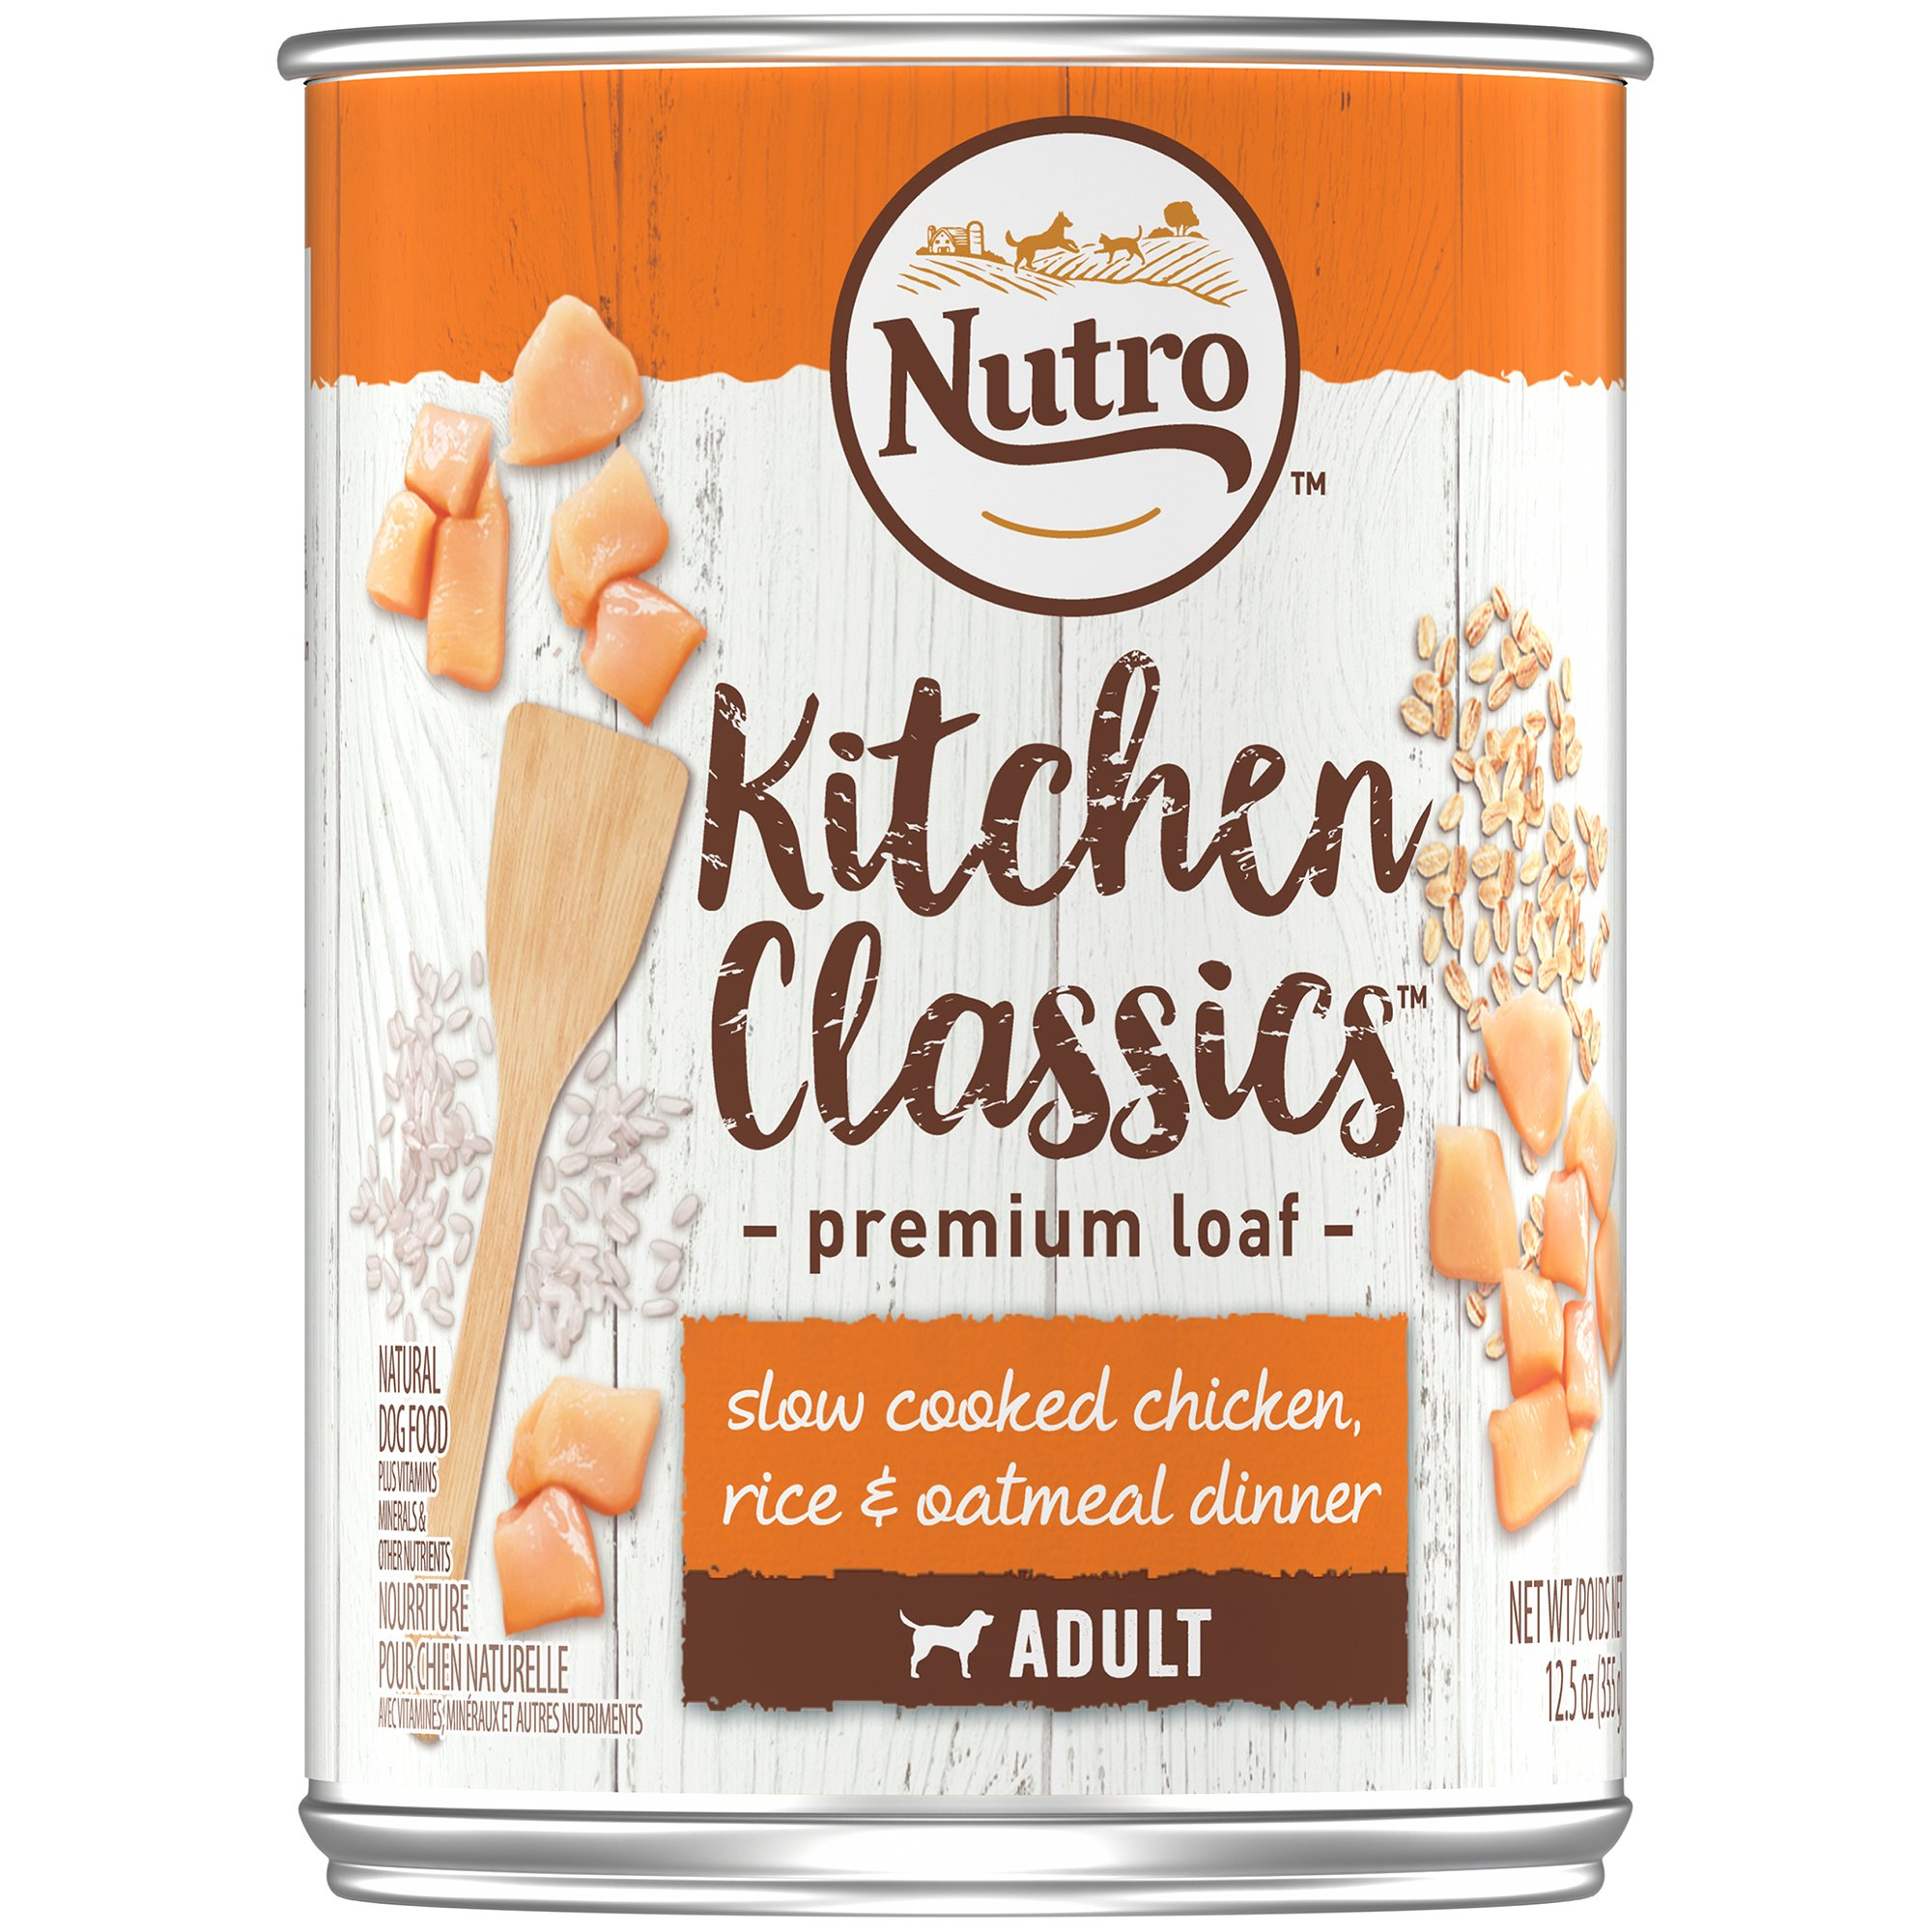 Nutro KITCHEN CLASSICS Adult Canned Wet Dog Food Premium Loaf Slow Cooked Chicken, Rice & Oatmeal Dinner, (12) 12.5 oz. Cans